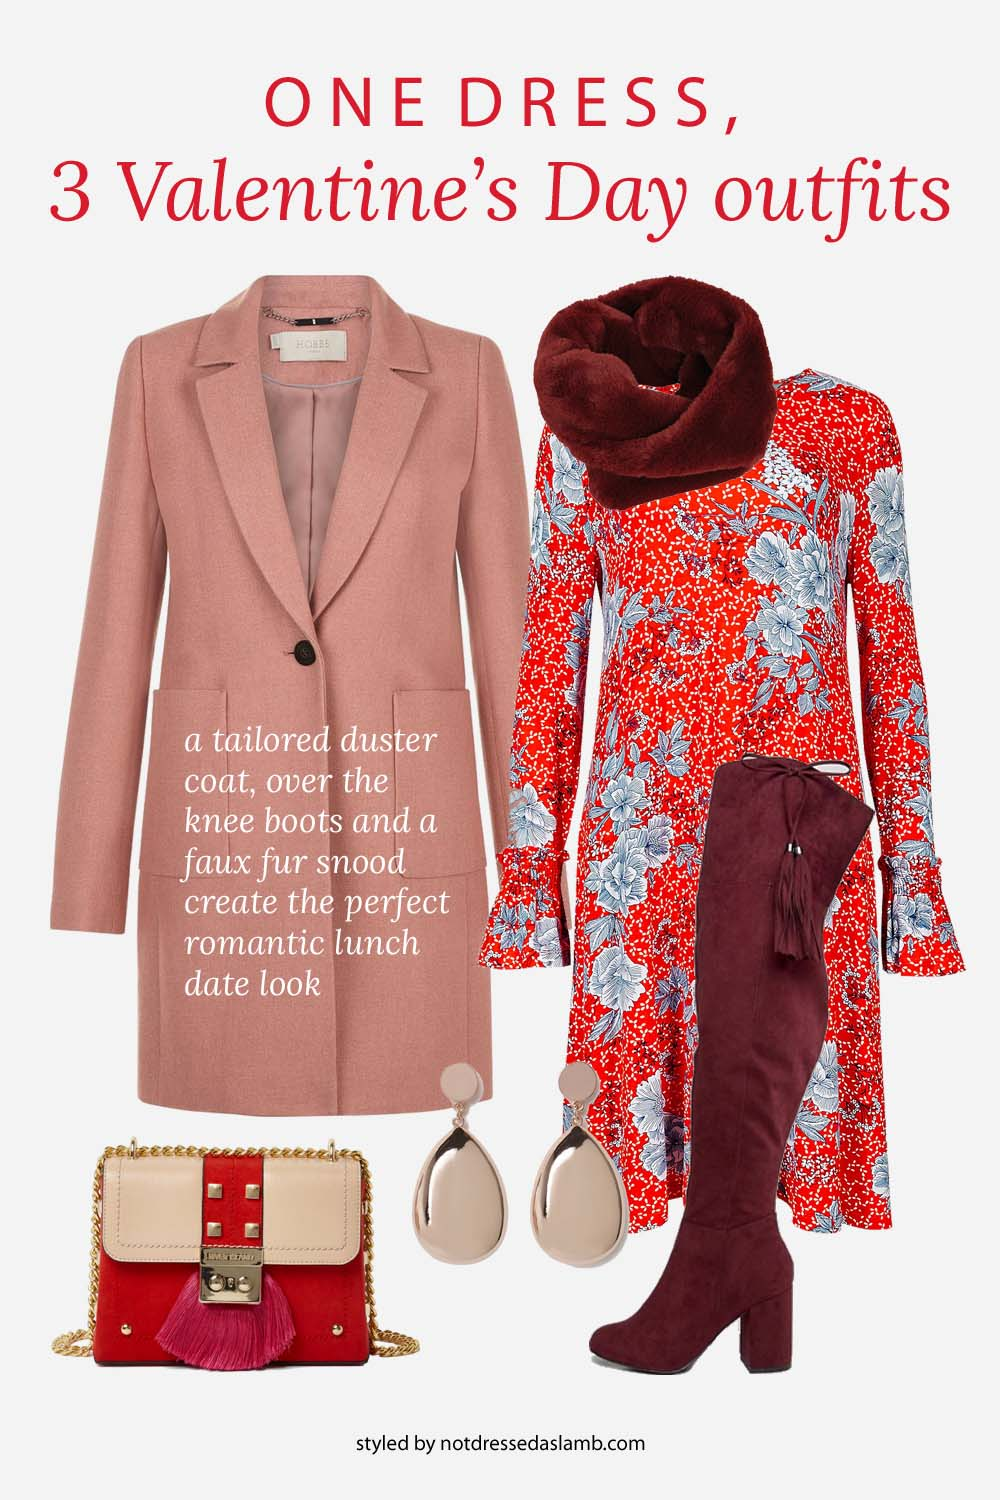 3 Ways to Style One Red Floral Dress for Valentine's Day | Smart lunchtime date look, with a tailored duster coat, over the knee boots and a faux fur snood